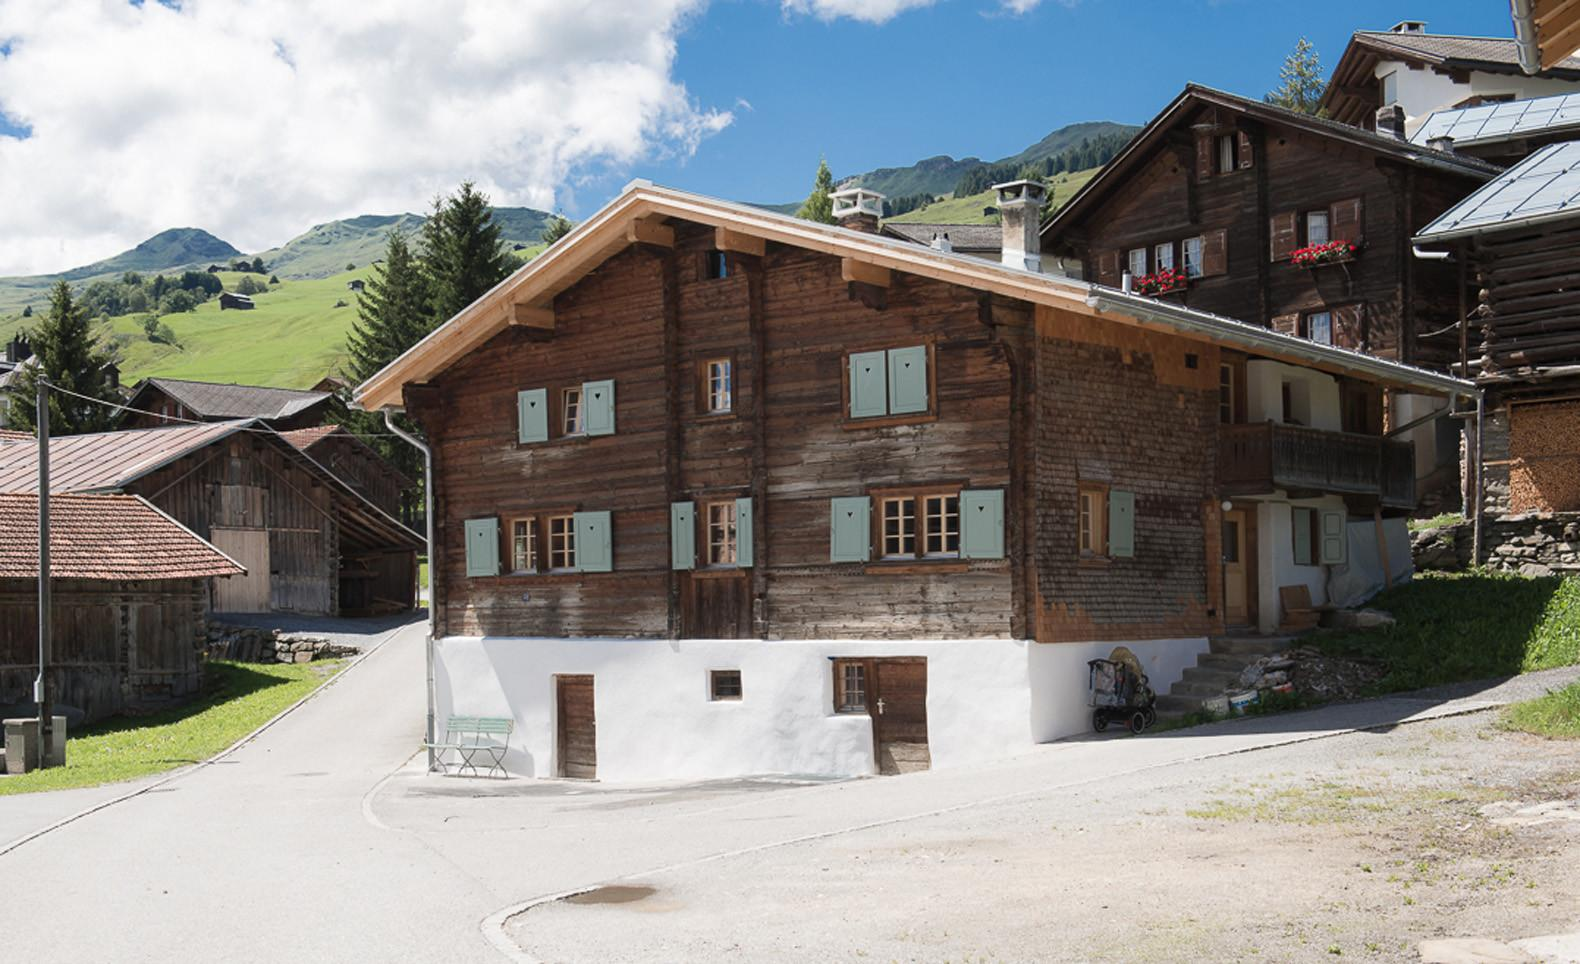 Traditional Swiss Ski Chalet Renovated Into Two Modern